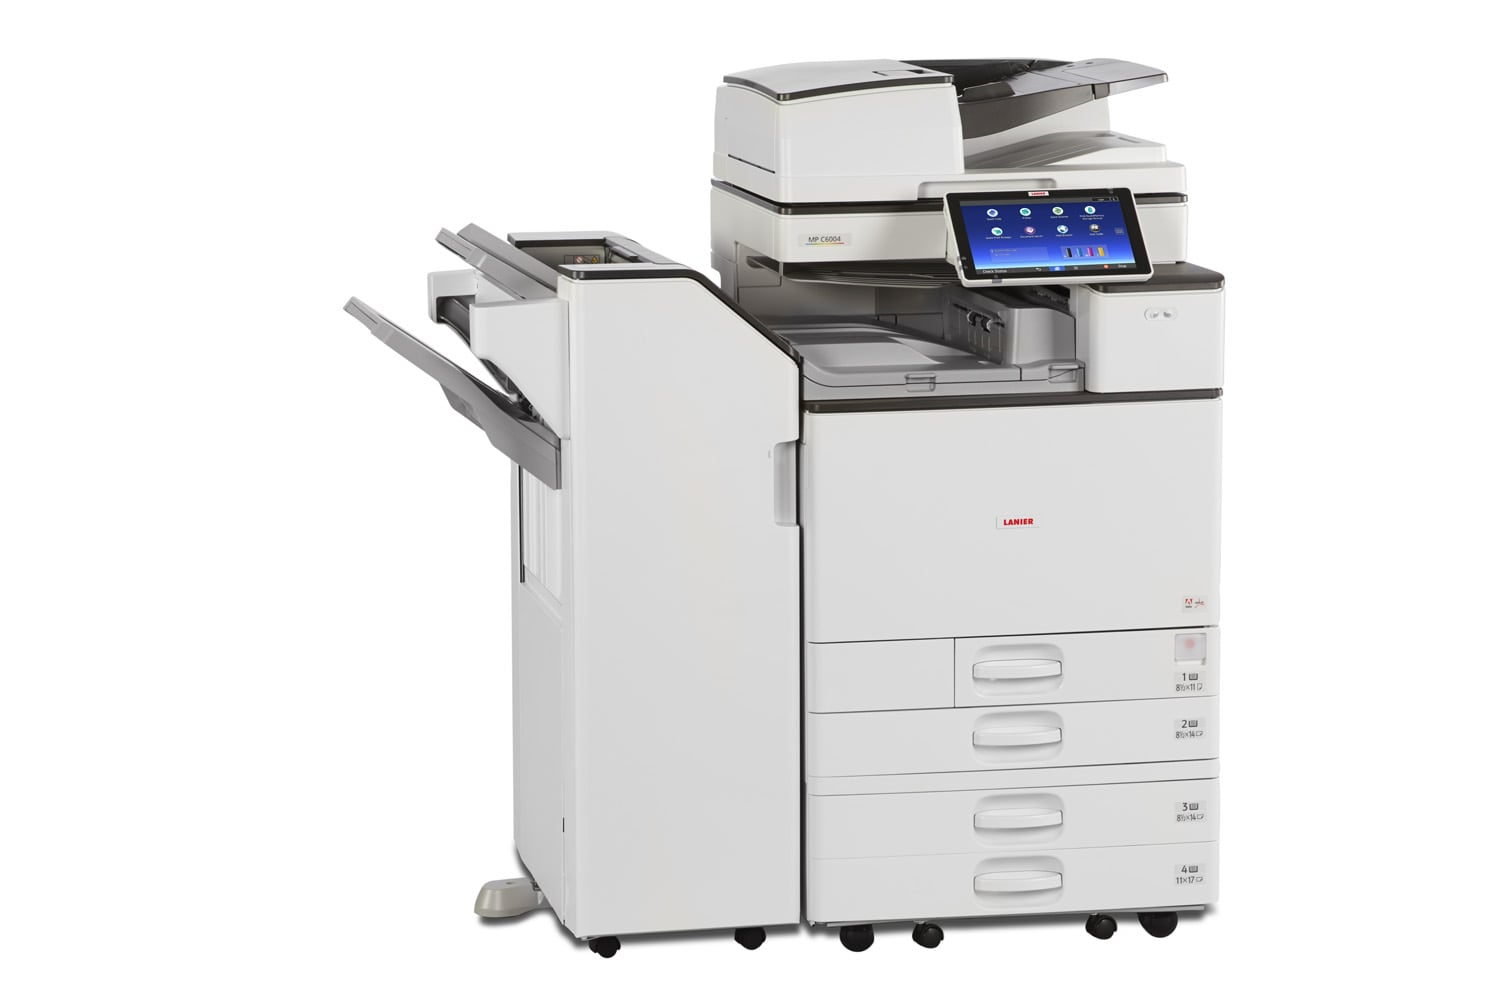 Ricoh MPC4504 colour multifunction printer